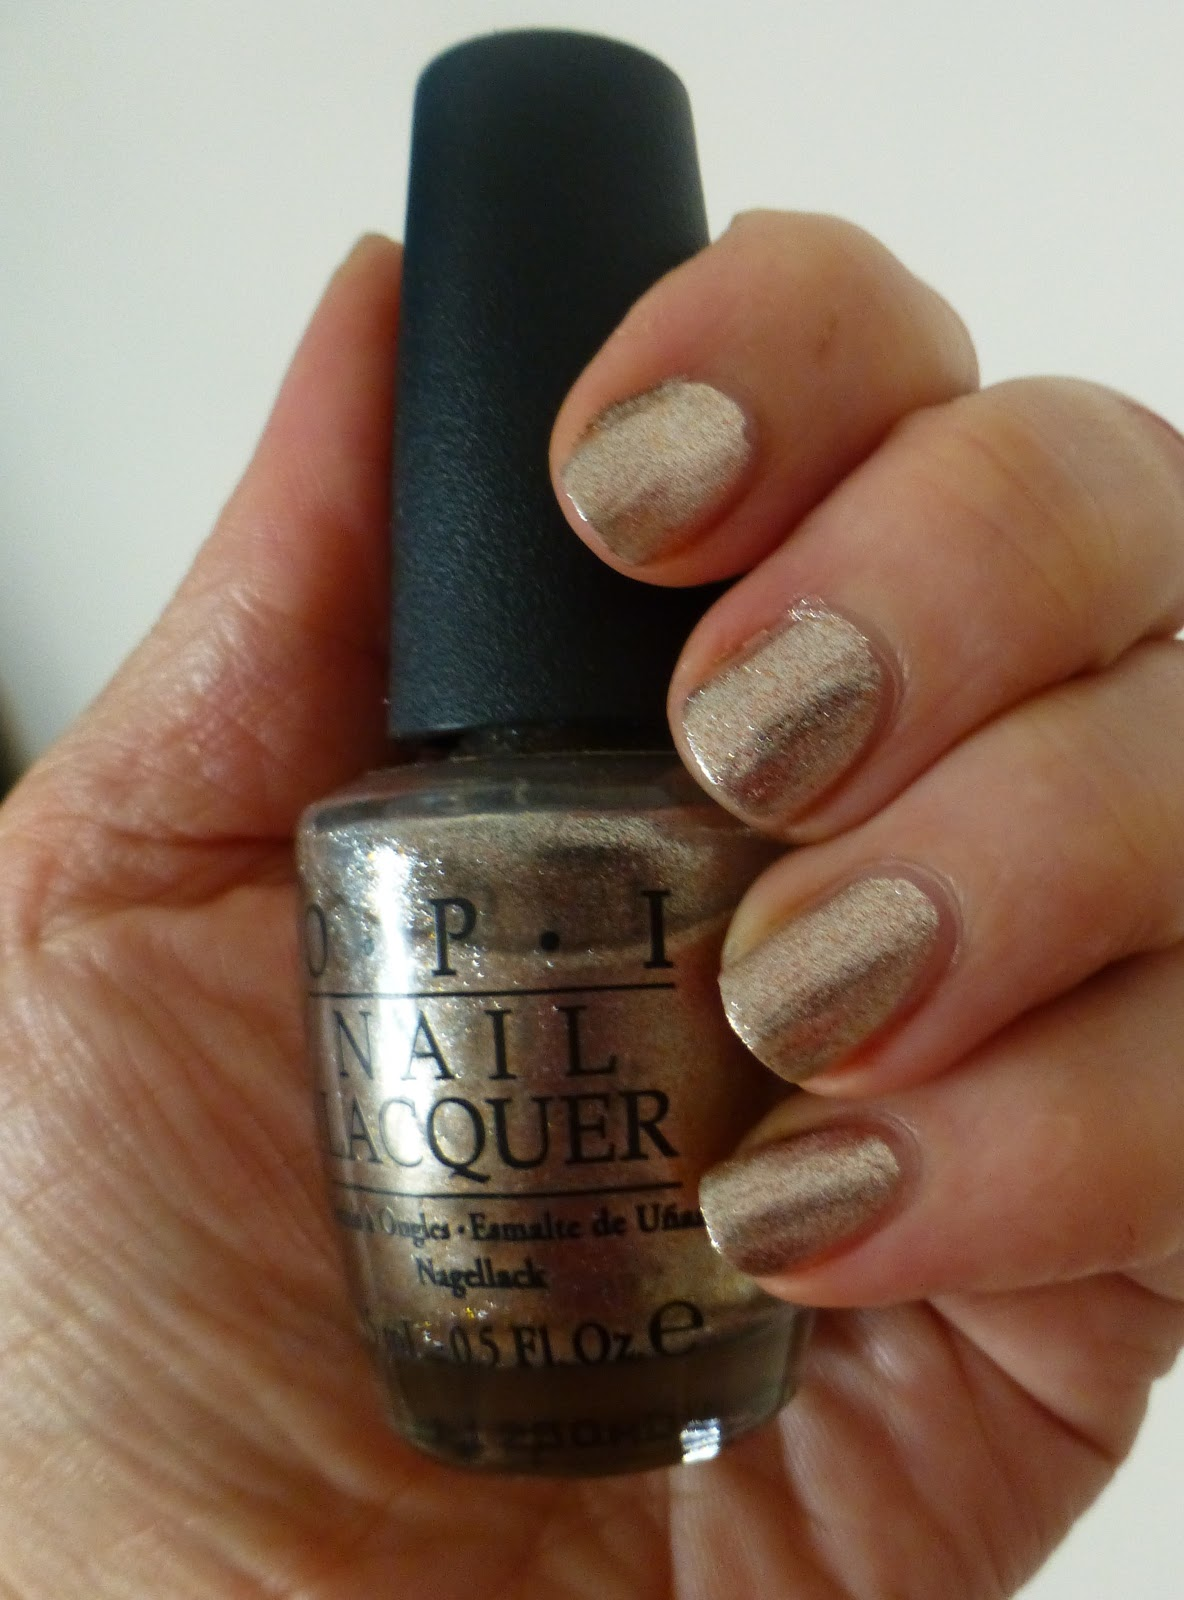 IndieAna- In Search of the HolyGrail: Nail Polish Declutter Update #3